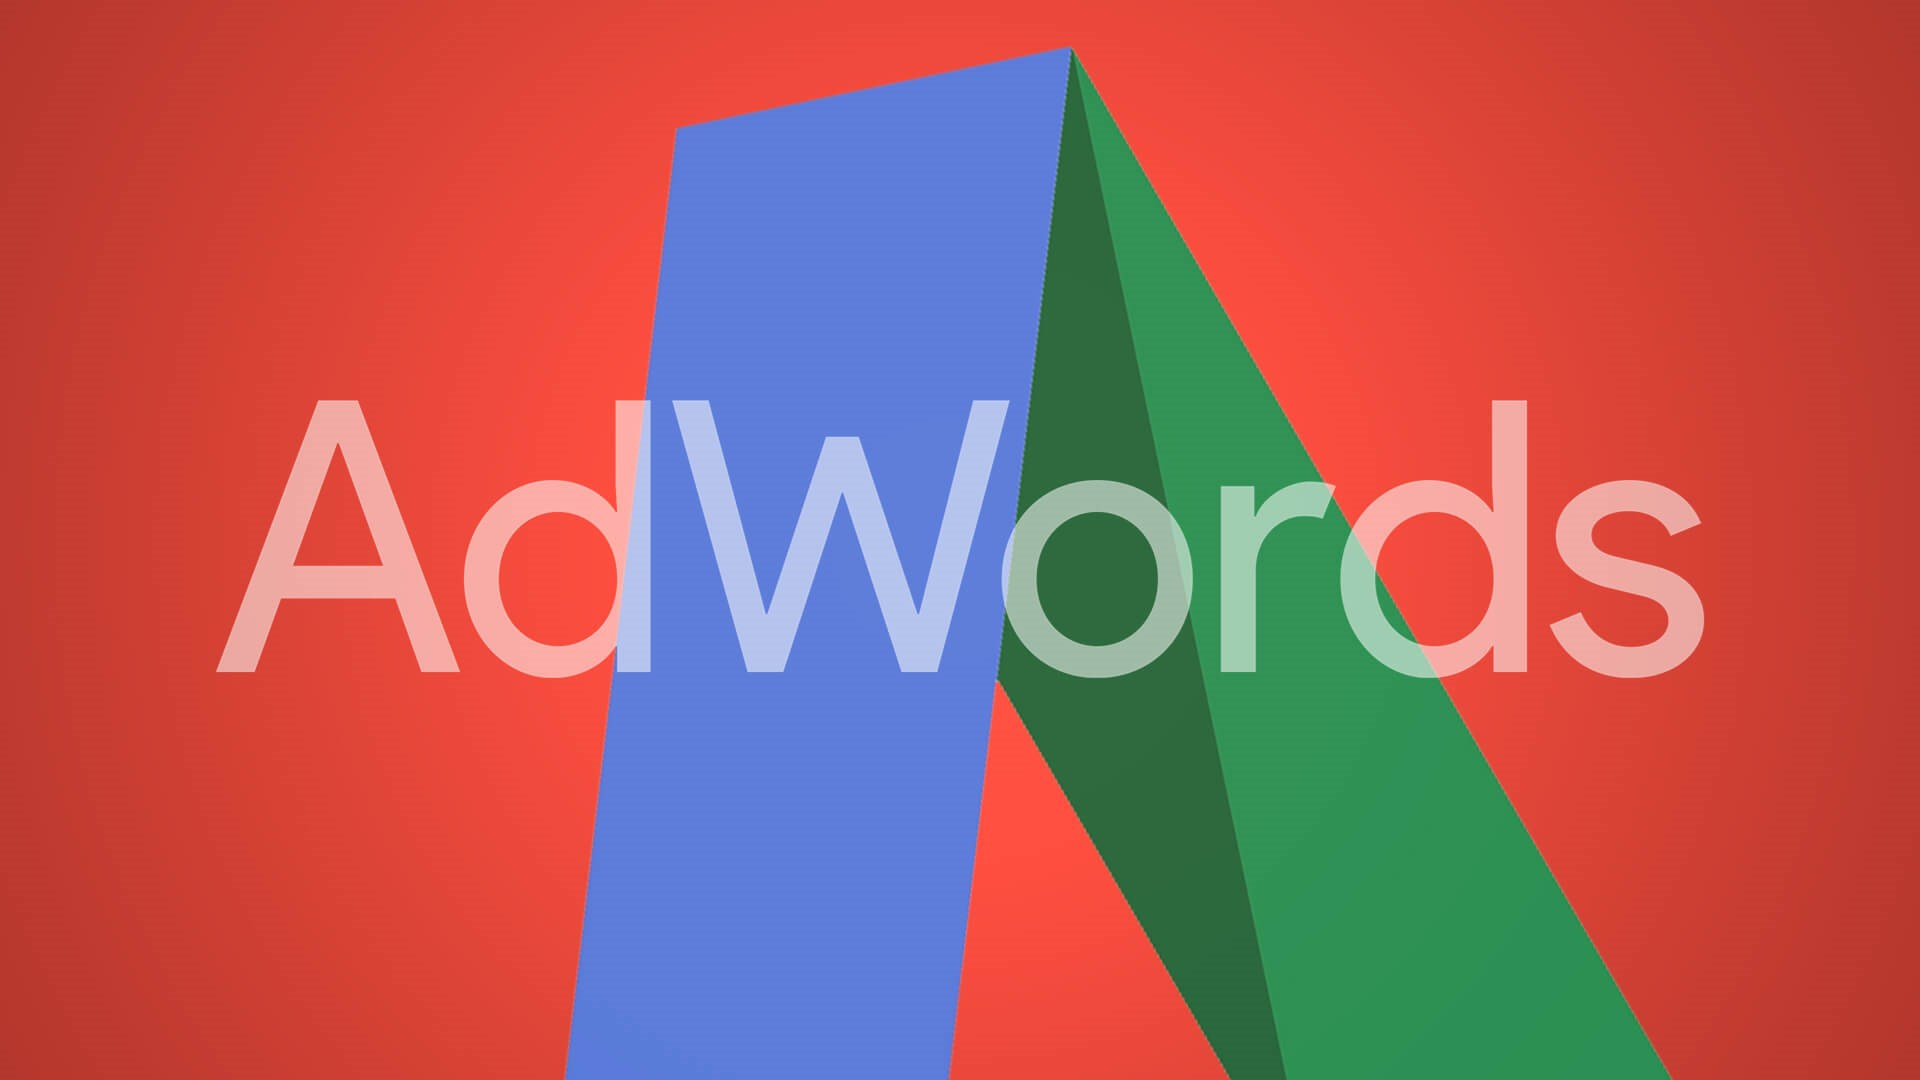 5 annoying AdWords bugs only the pros know